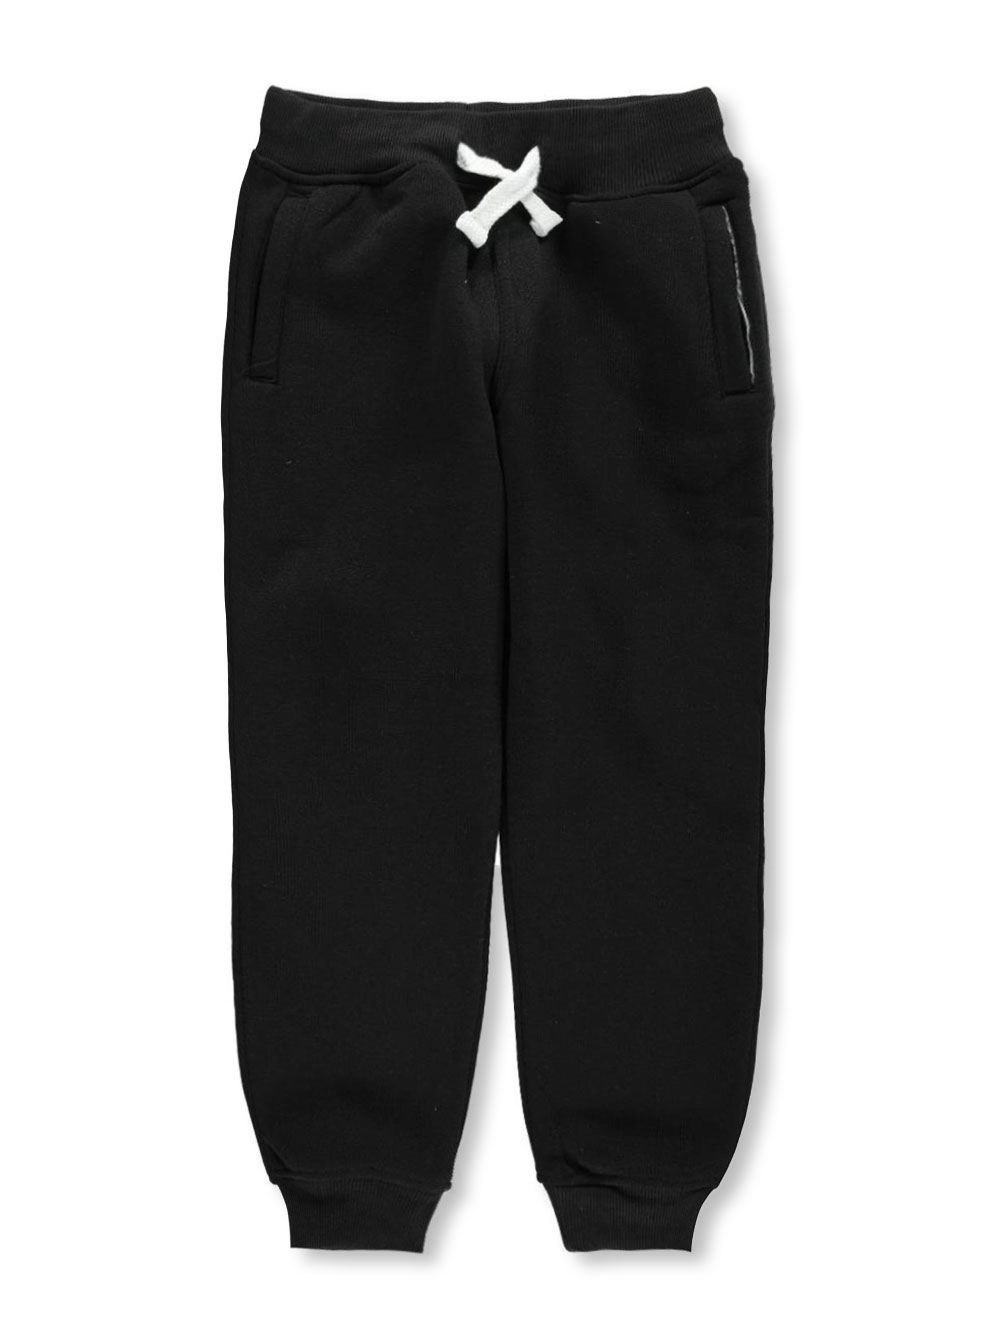 Boys Navy Sweatpants/Joggers